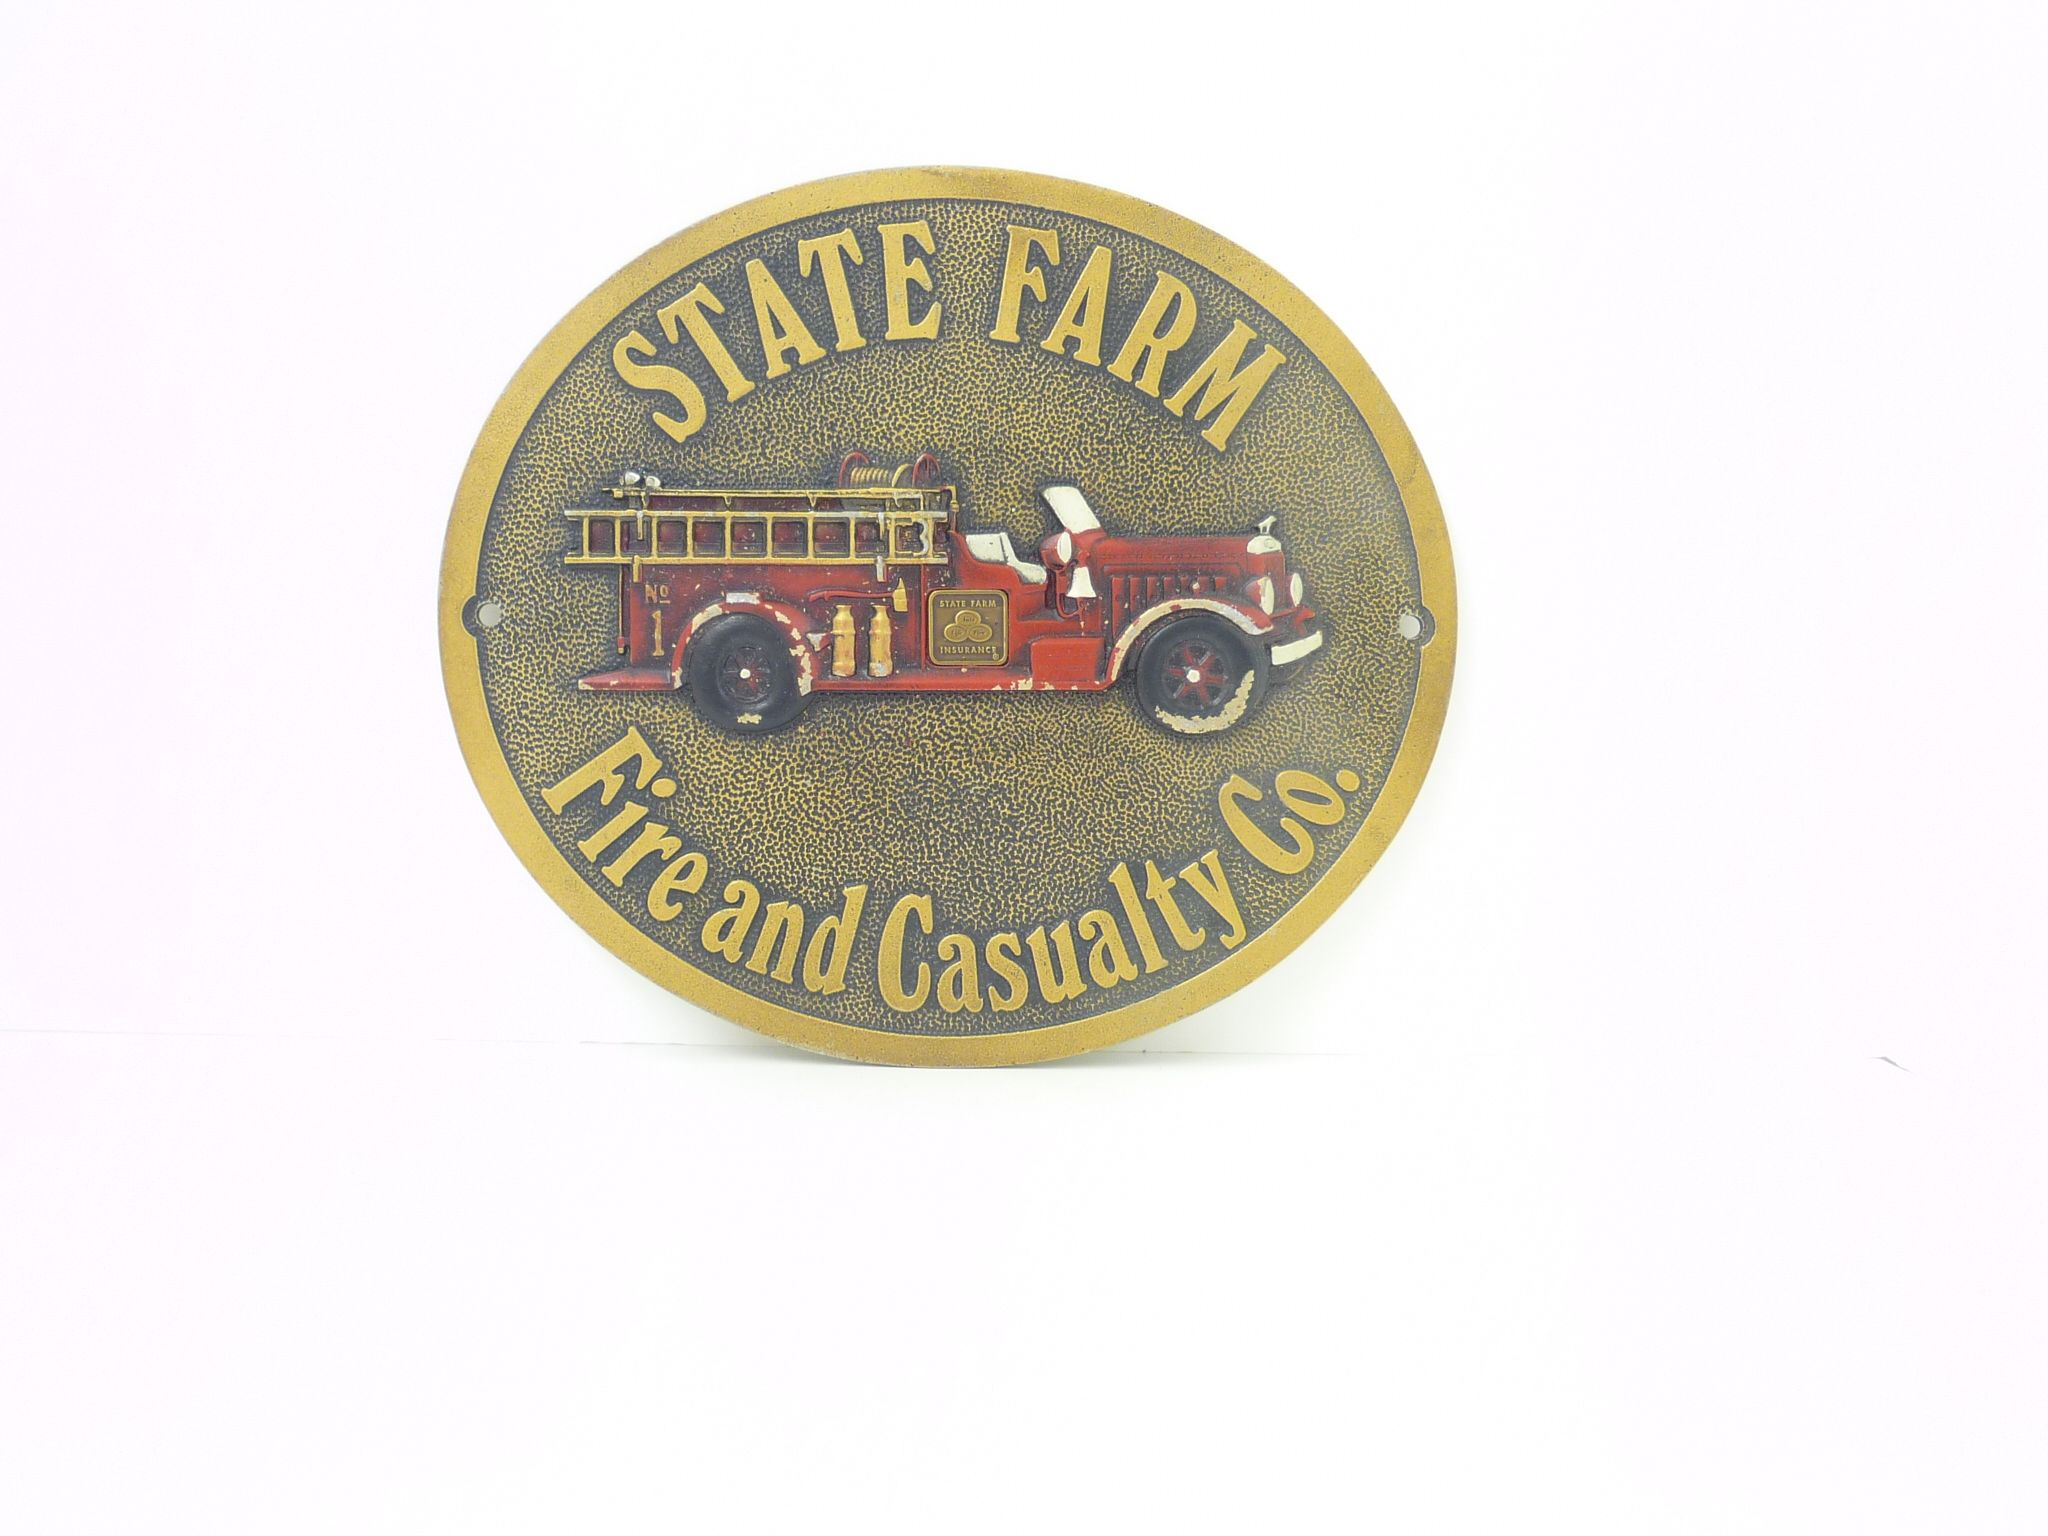 State Farm Insurance. United States, year unknown